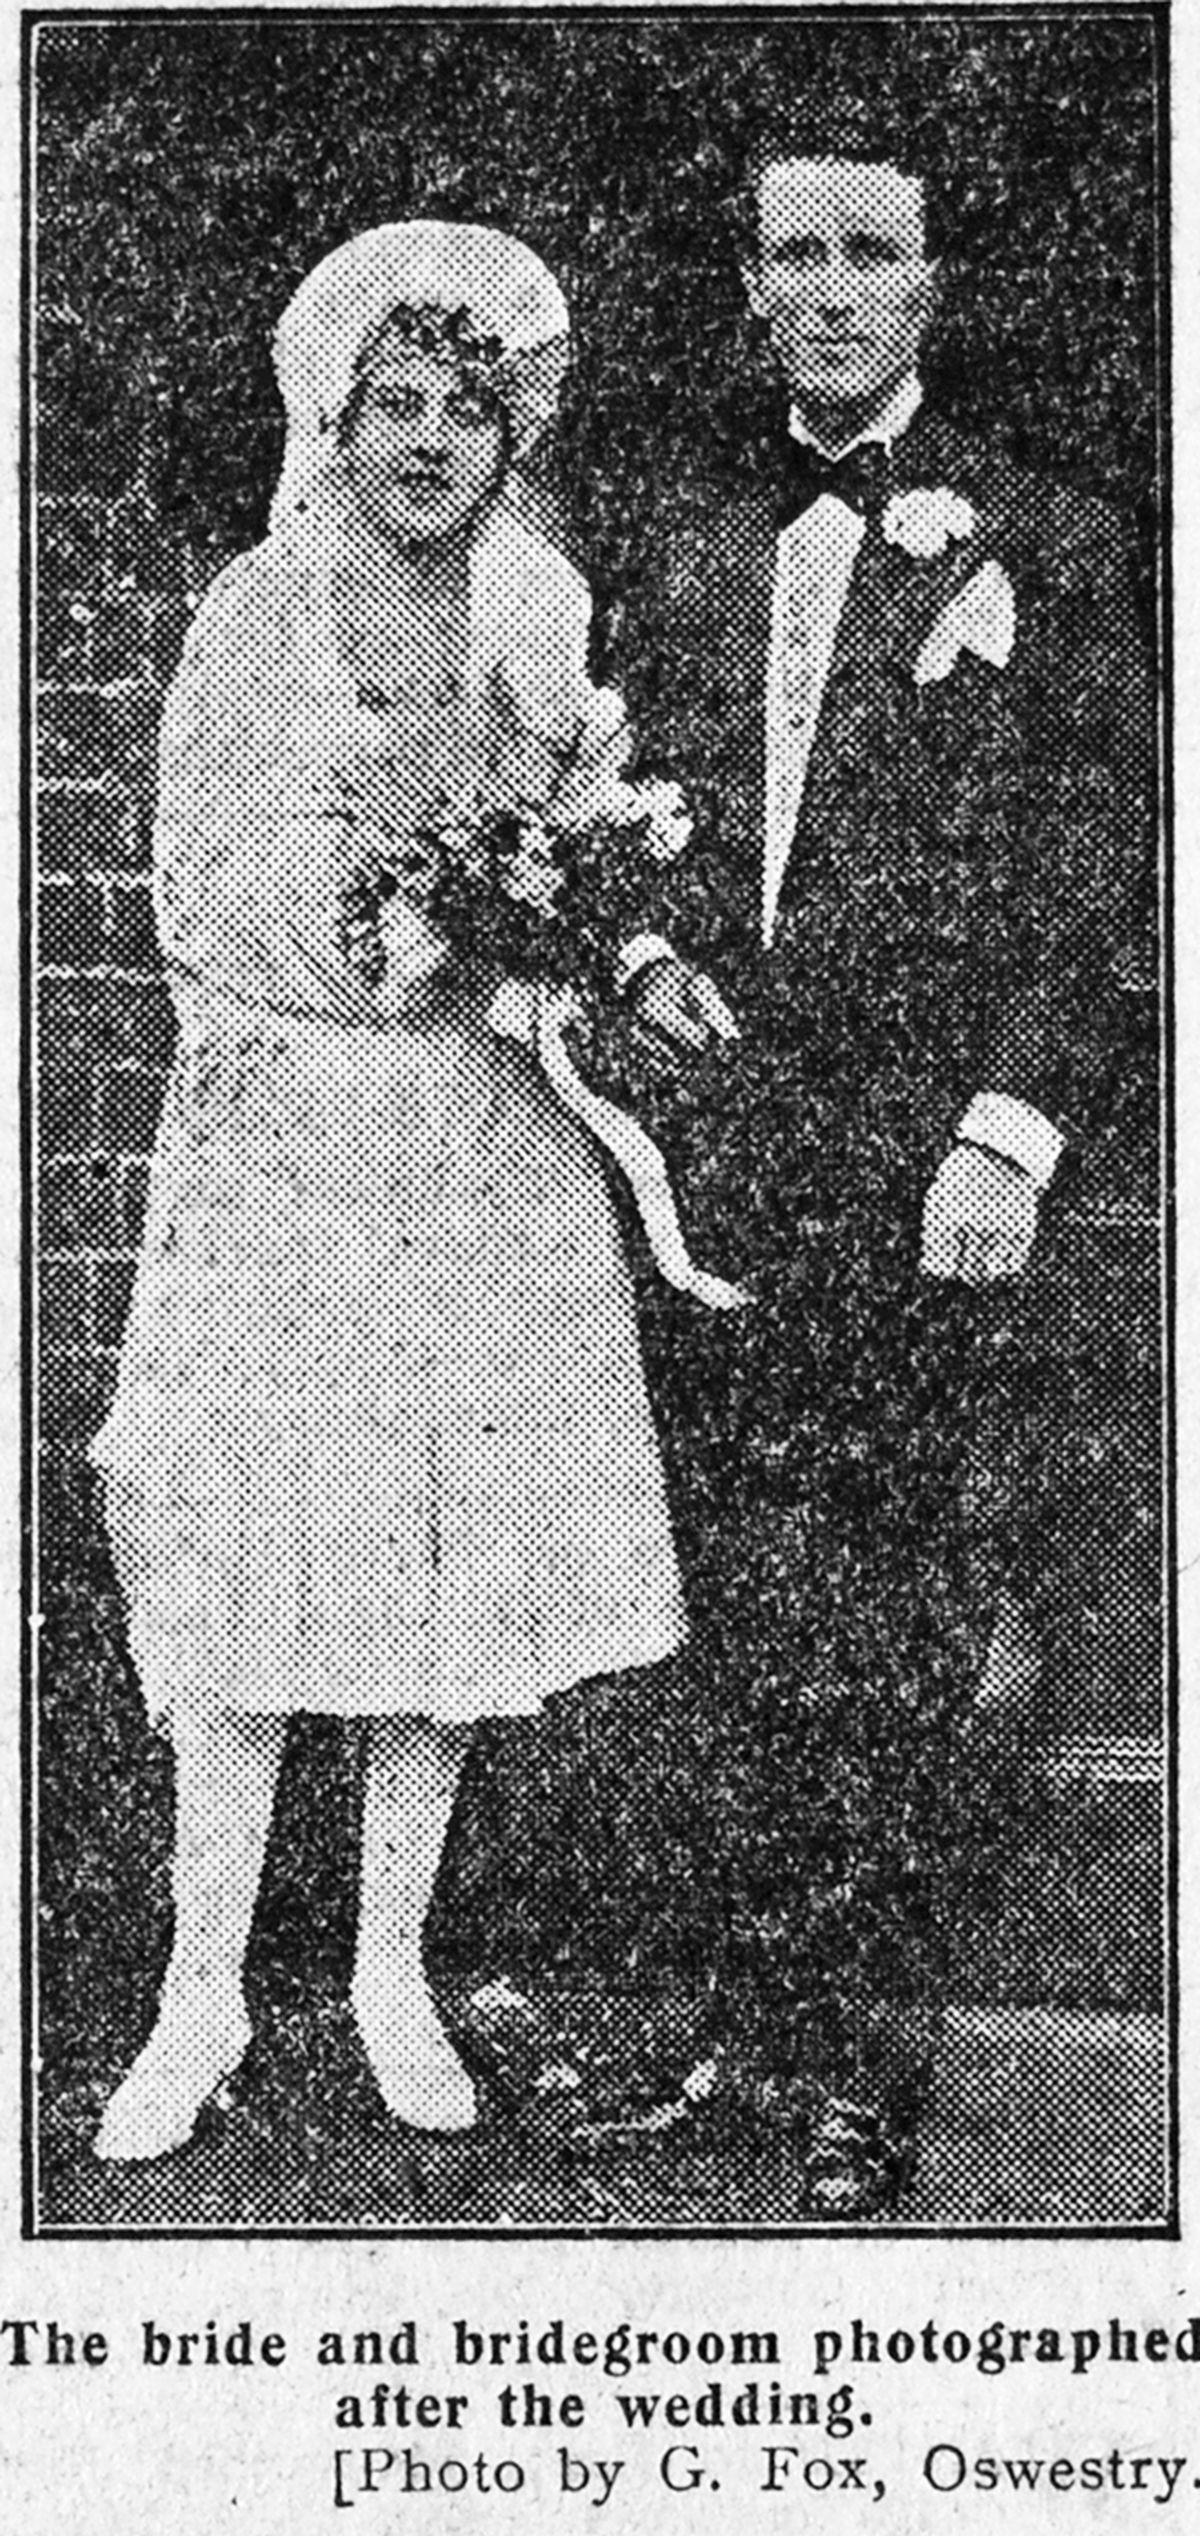 Olwen and Aldo Gucci's marriage at Oswestry in 1927